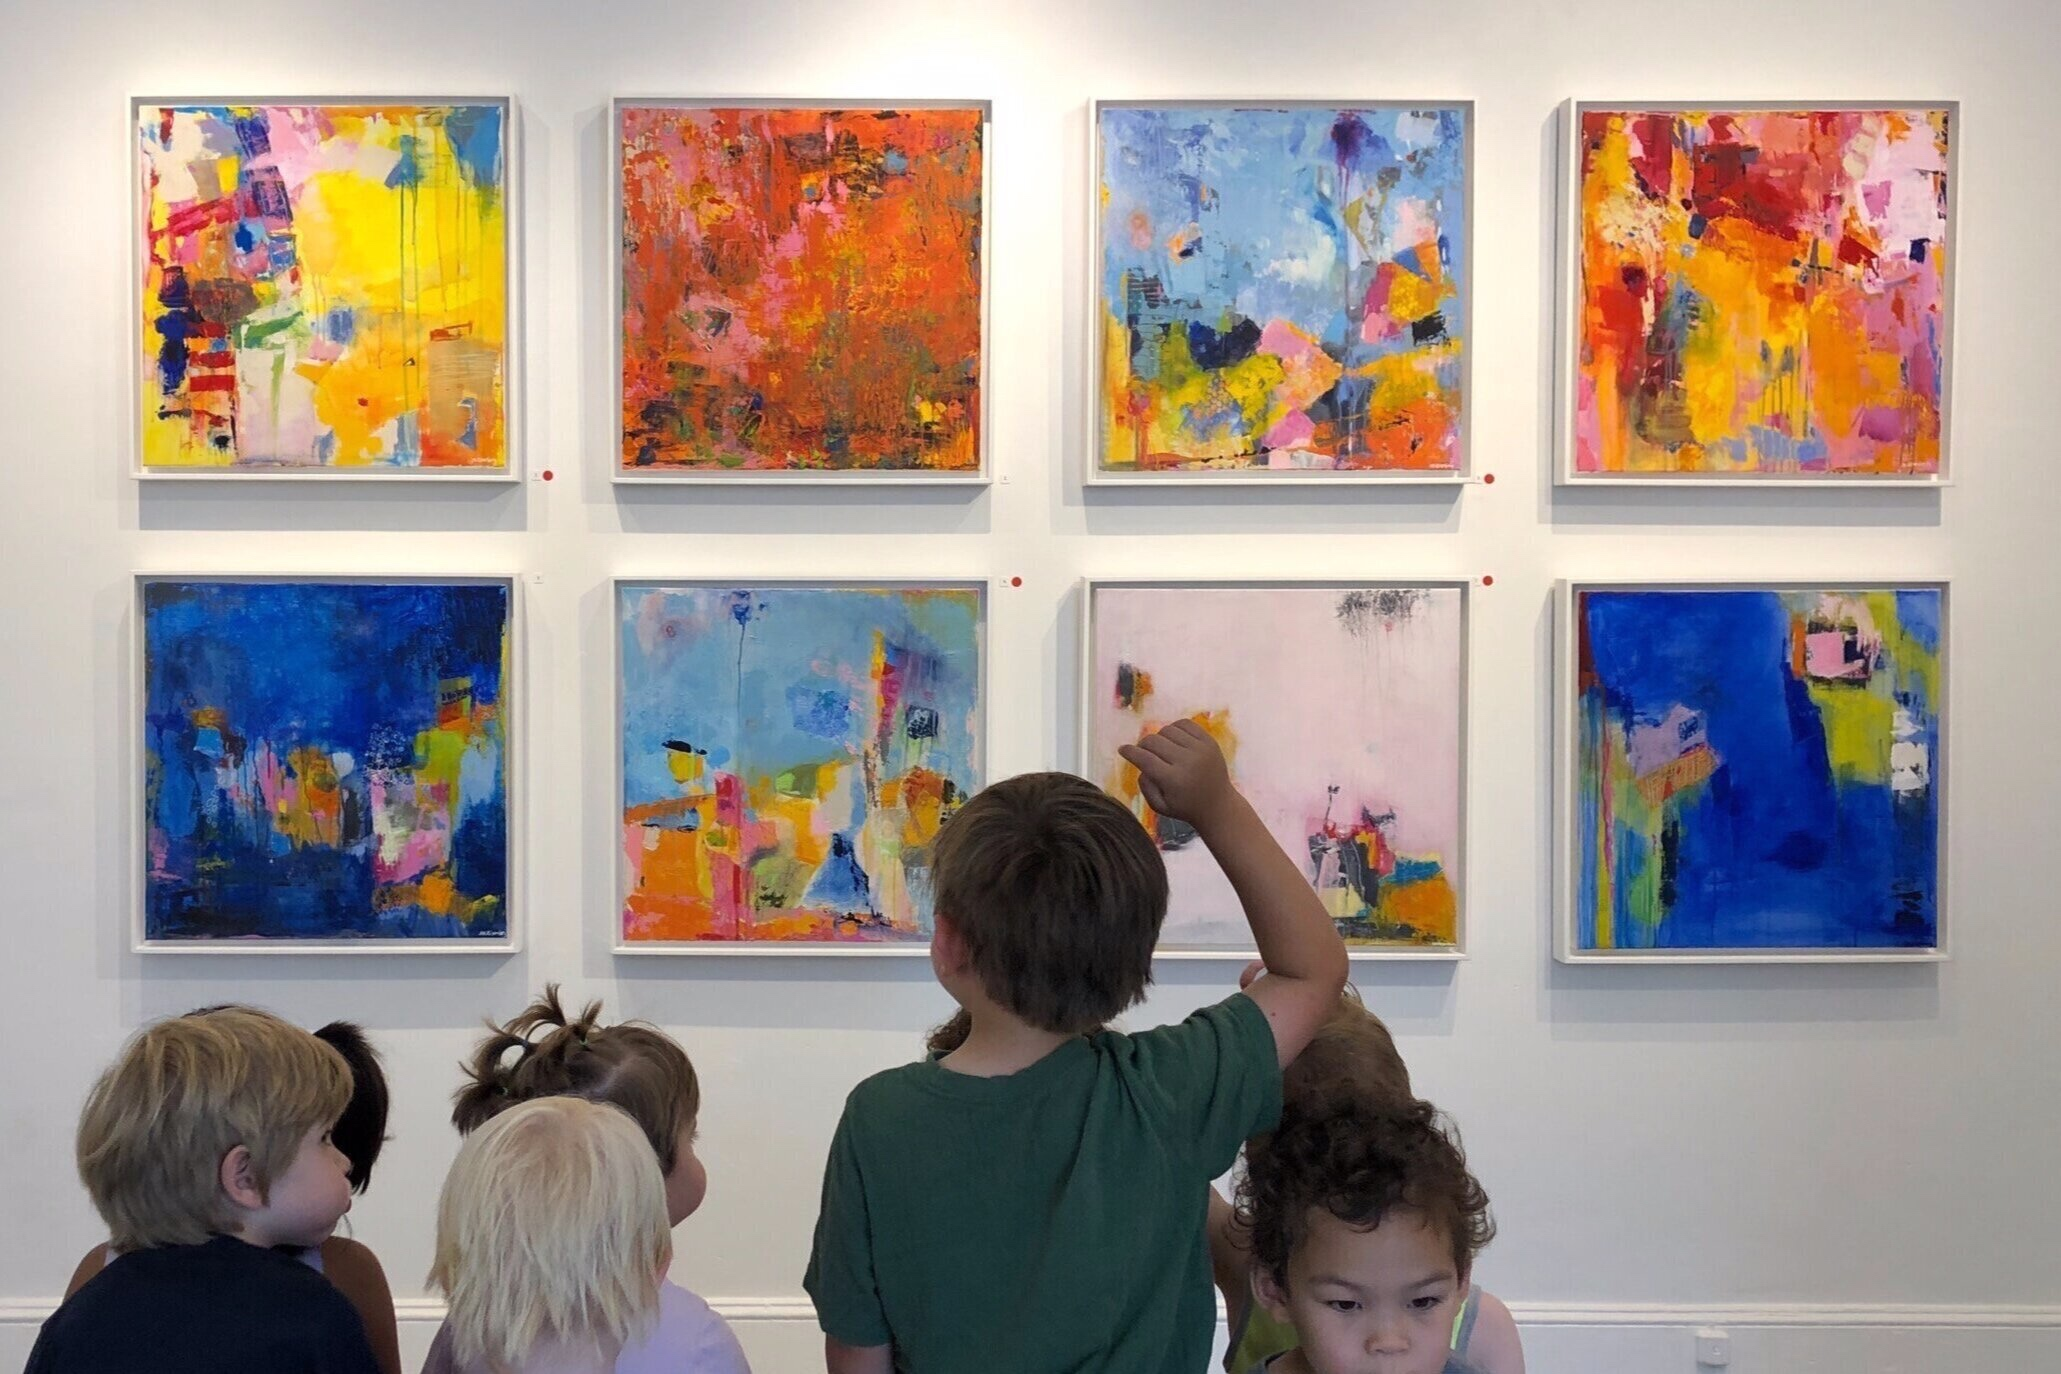 The Giving Tree Pre-K class visiting Sally K Eisenberg's exhibition at DVAA.